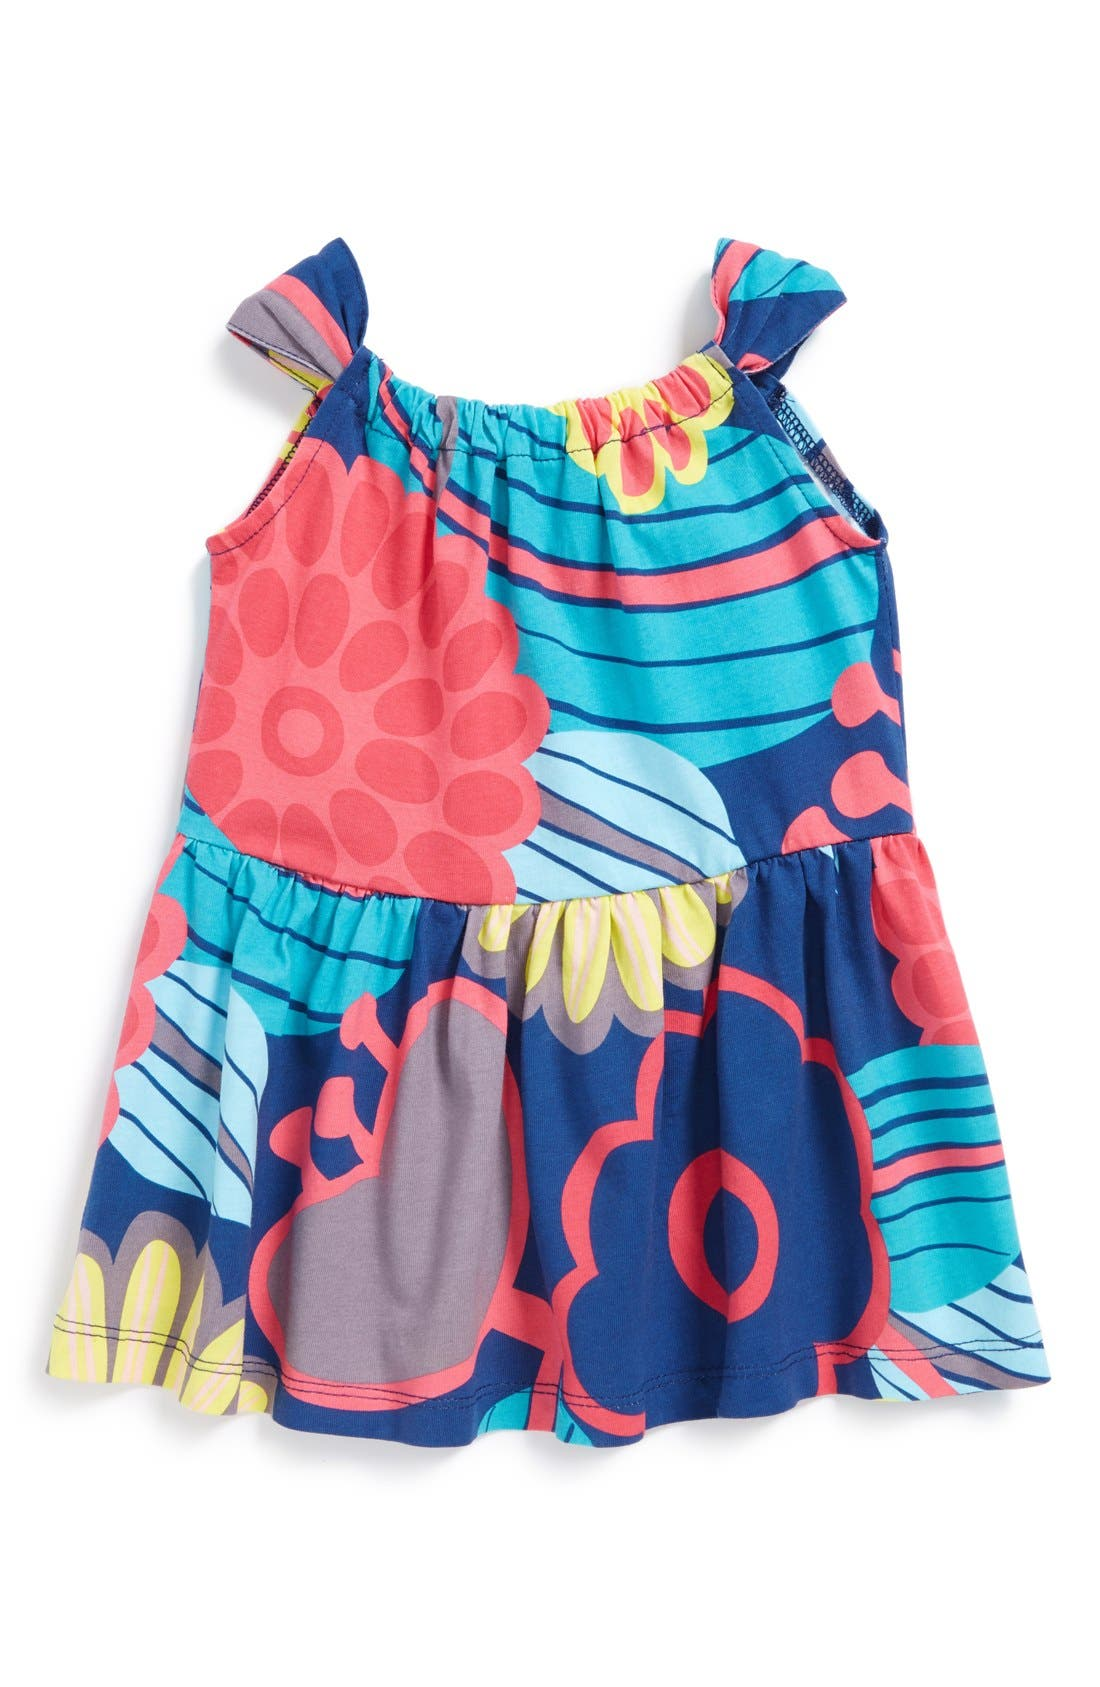 Alternate Image 1 Selected - Tea Collection 'Mod Gypsy' Twirl Top (Baby Girls)